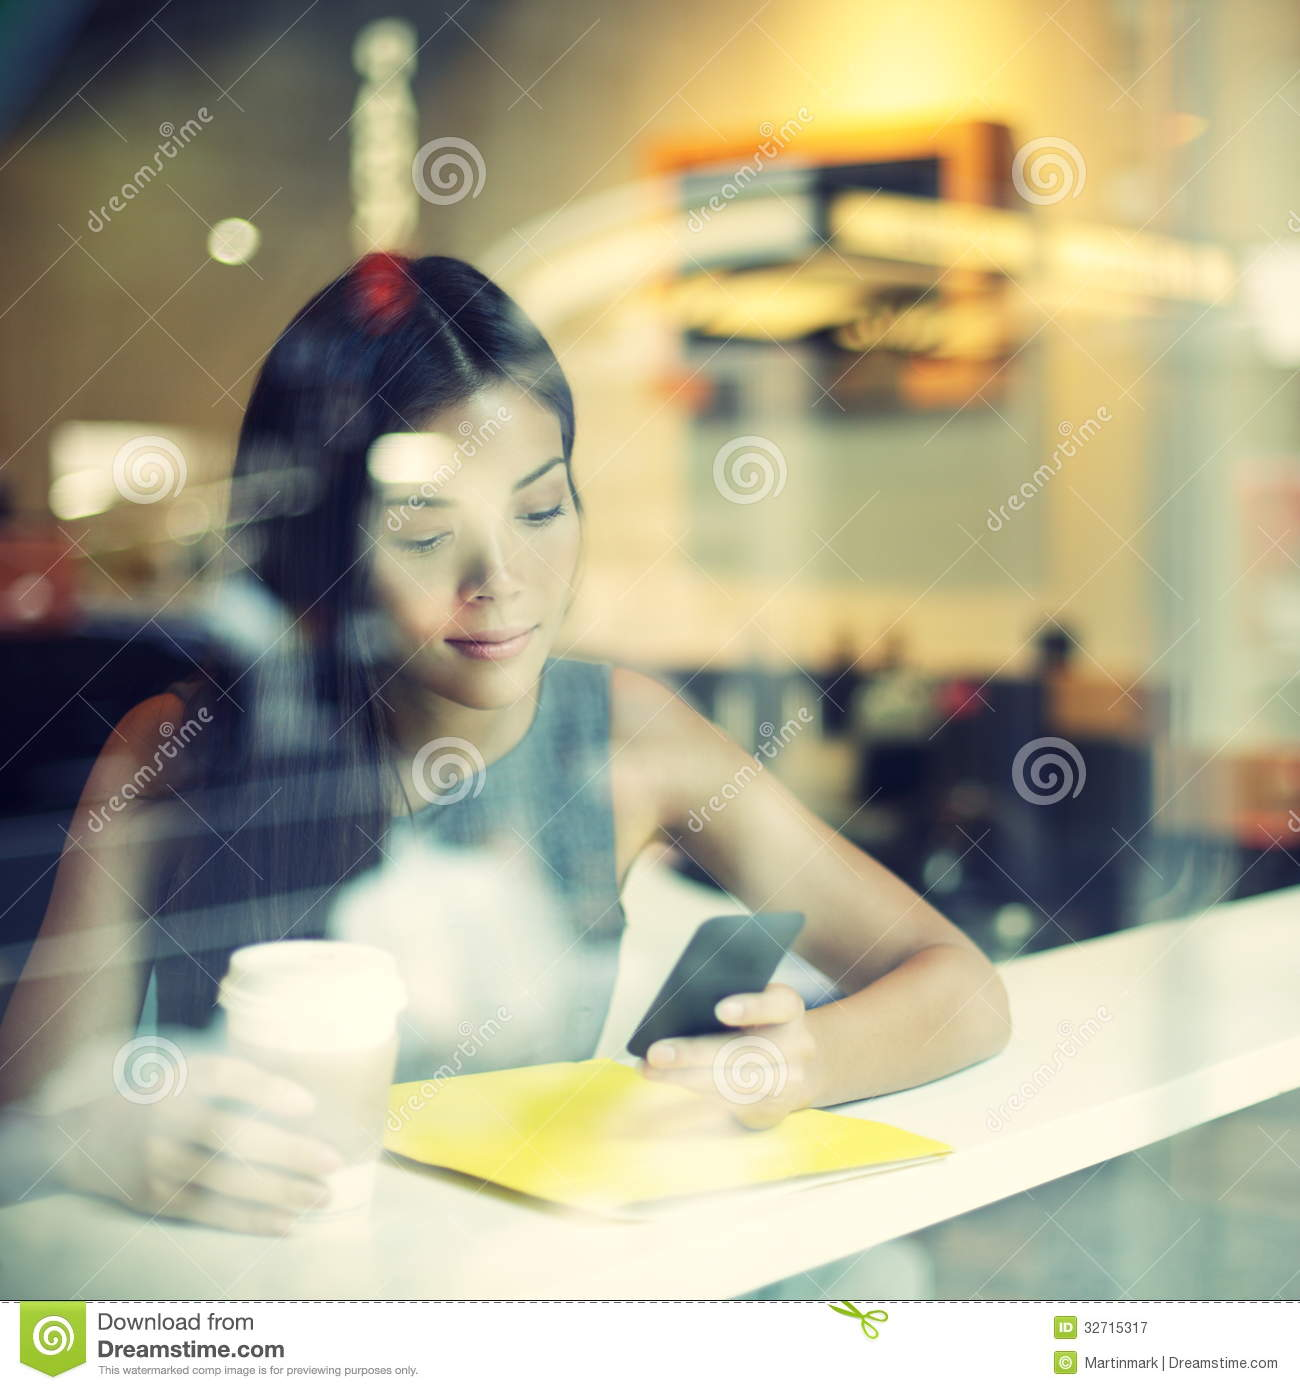 Cafe city lifestyle woman on phone drinking coffee